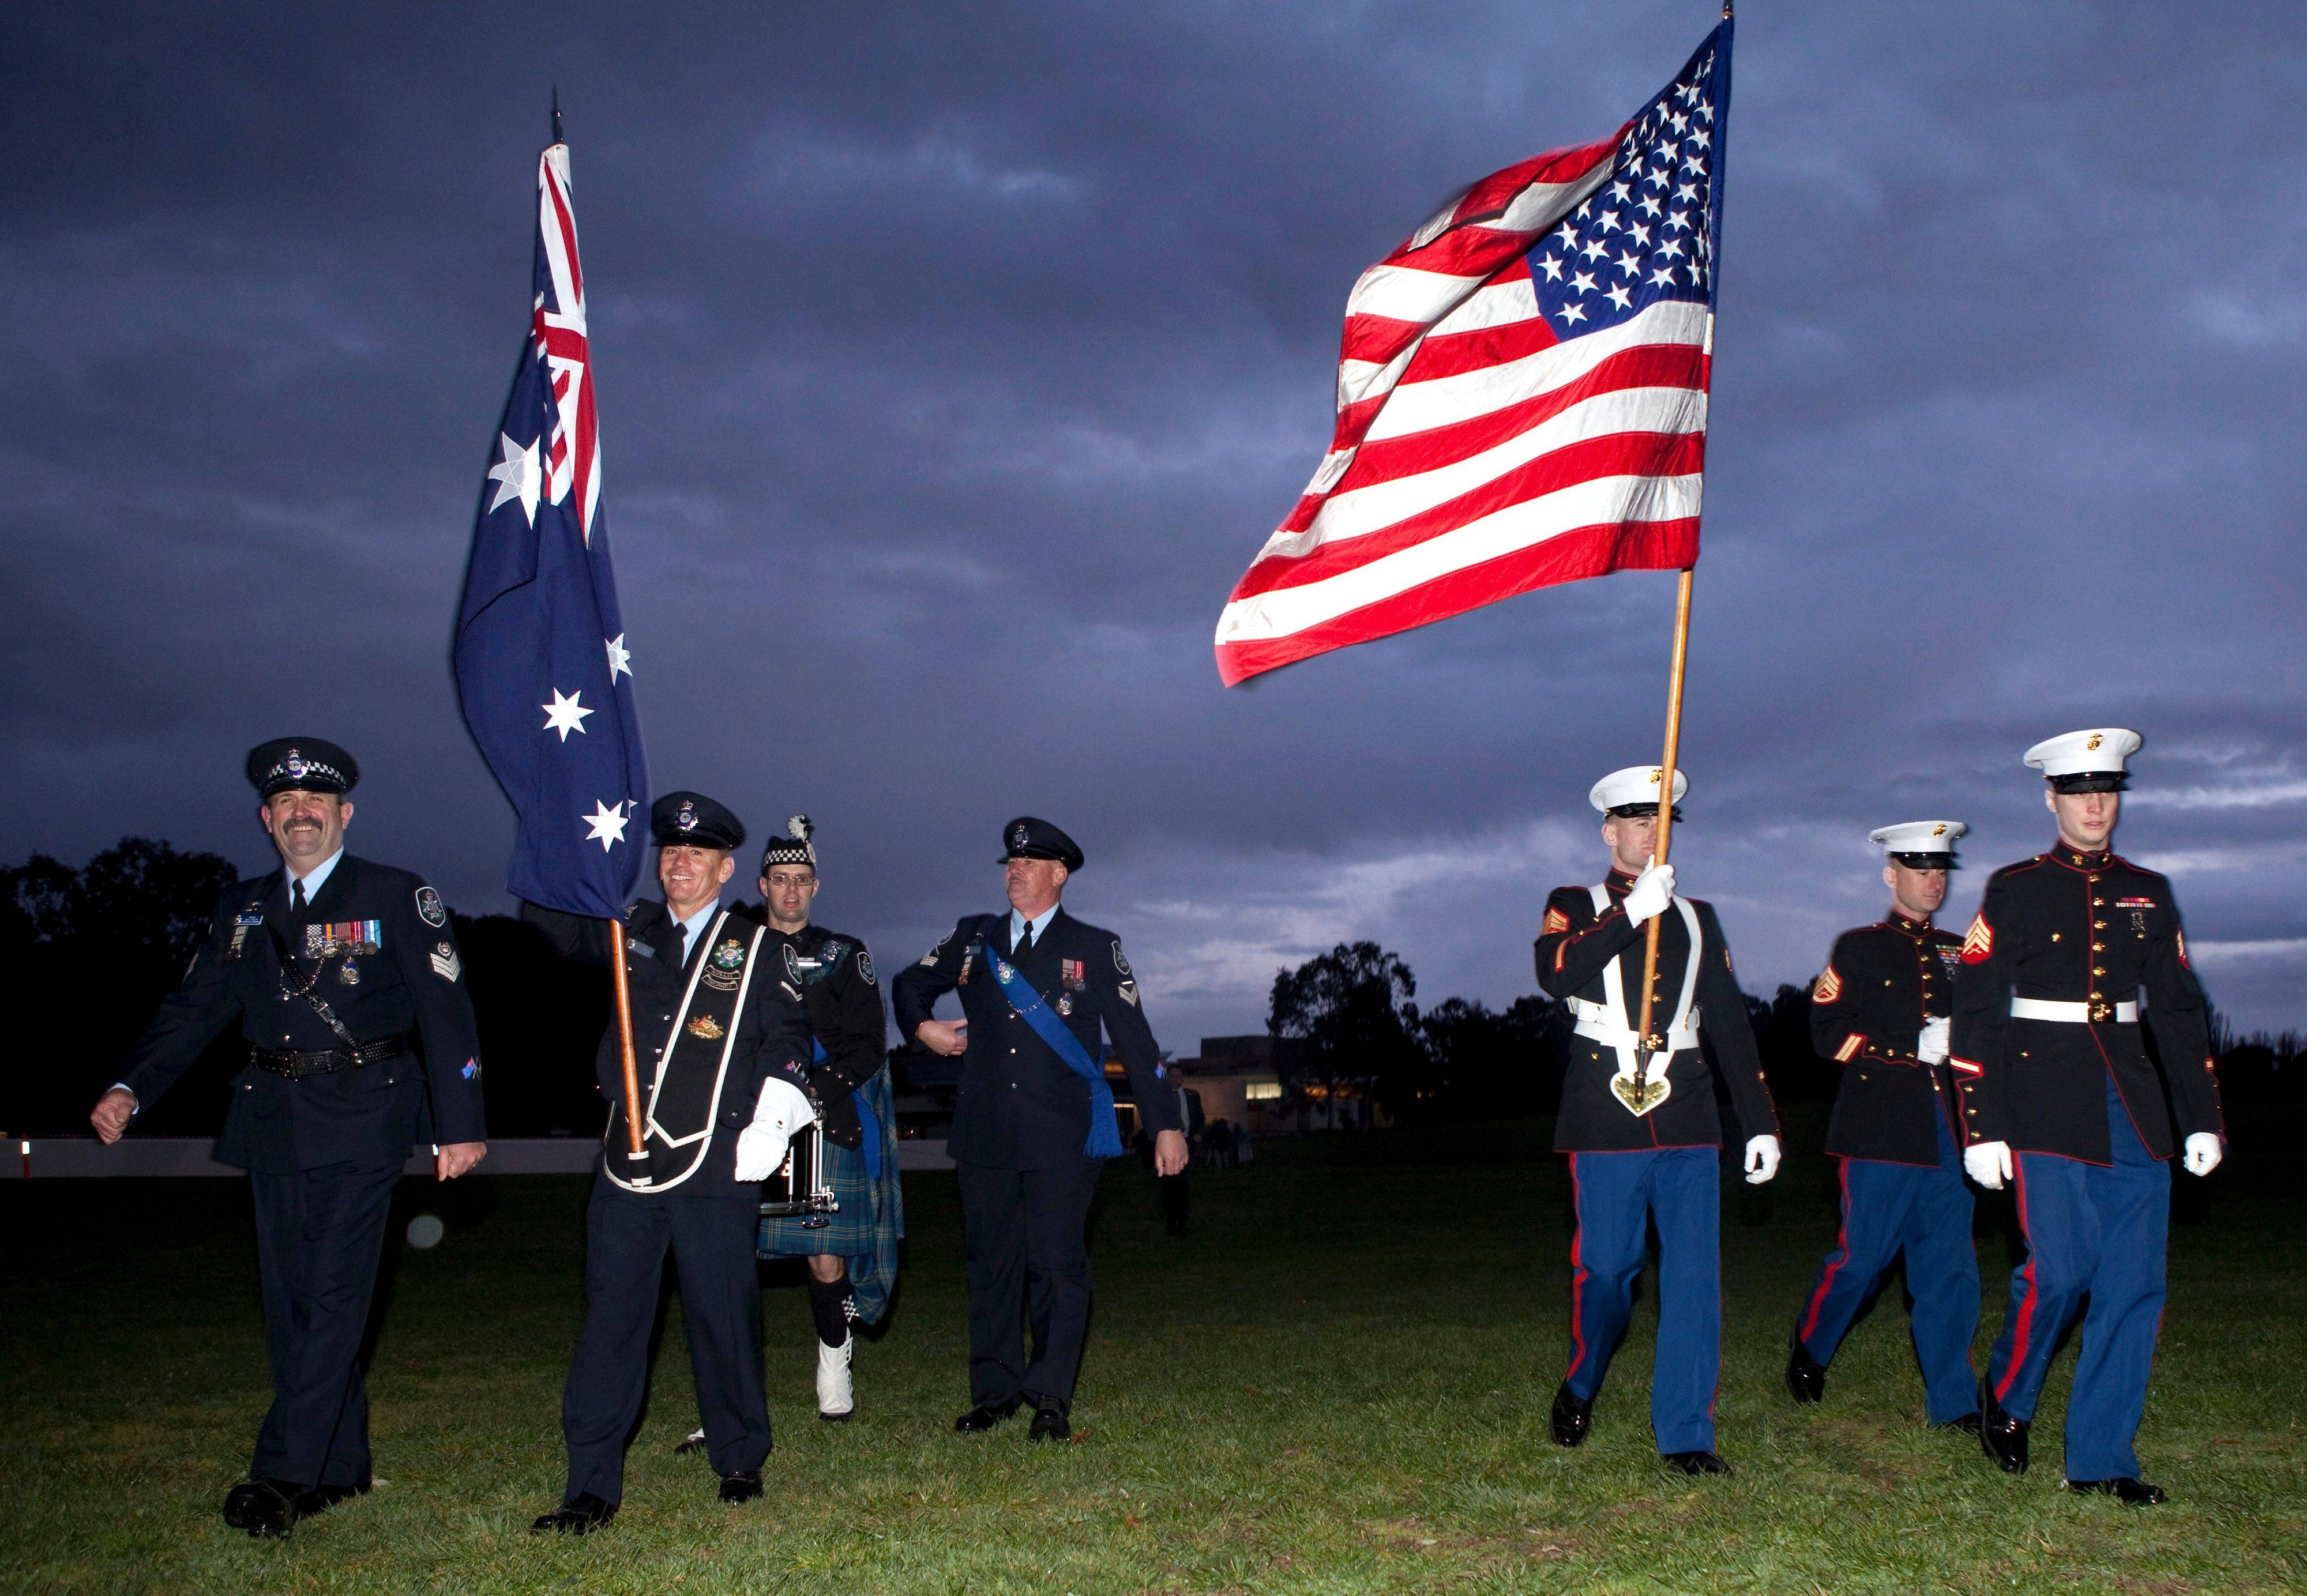 The Australian and American flags are withdrawn after a remembrance service marking the 10th anniversary of the Sept. 11 attacks in the US, in Canberra, Australia, Sunday, Sept. 11, 2011.